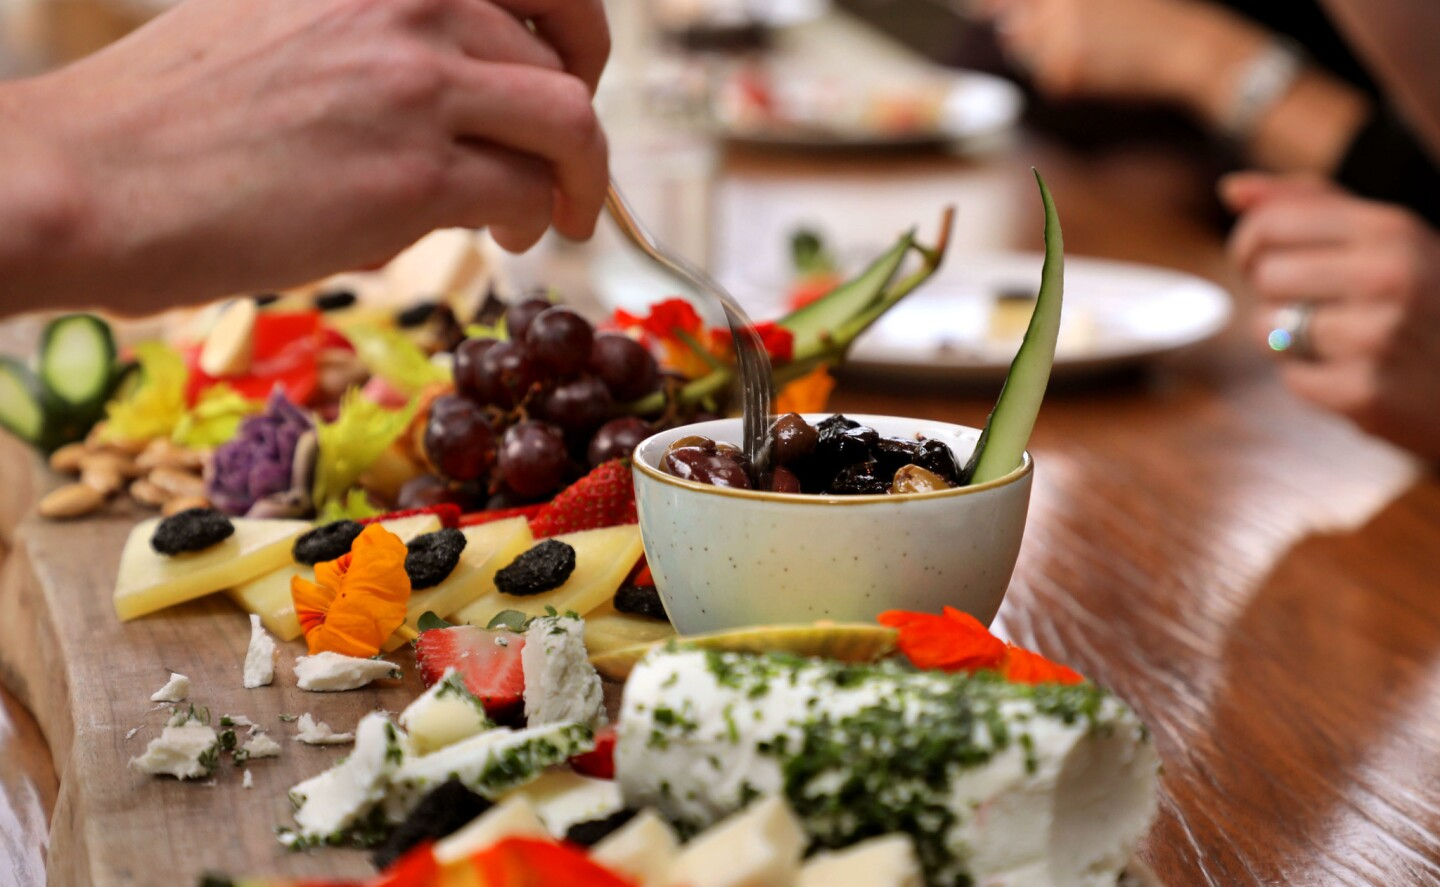 February 7, 2017_Carlsbad, California_USA_| At the Four Season Residence Club a guest at the 10 seat Chef's Table reaches for food from a large Mezze Board (a Mediterranean party platter) that features many types of food. |_Mandatory Photo Credit: Photo by Charlie Neuman